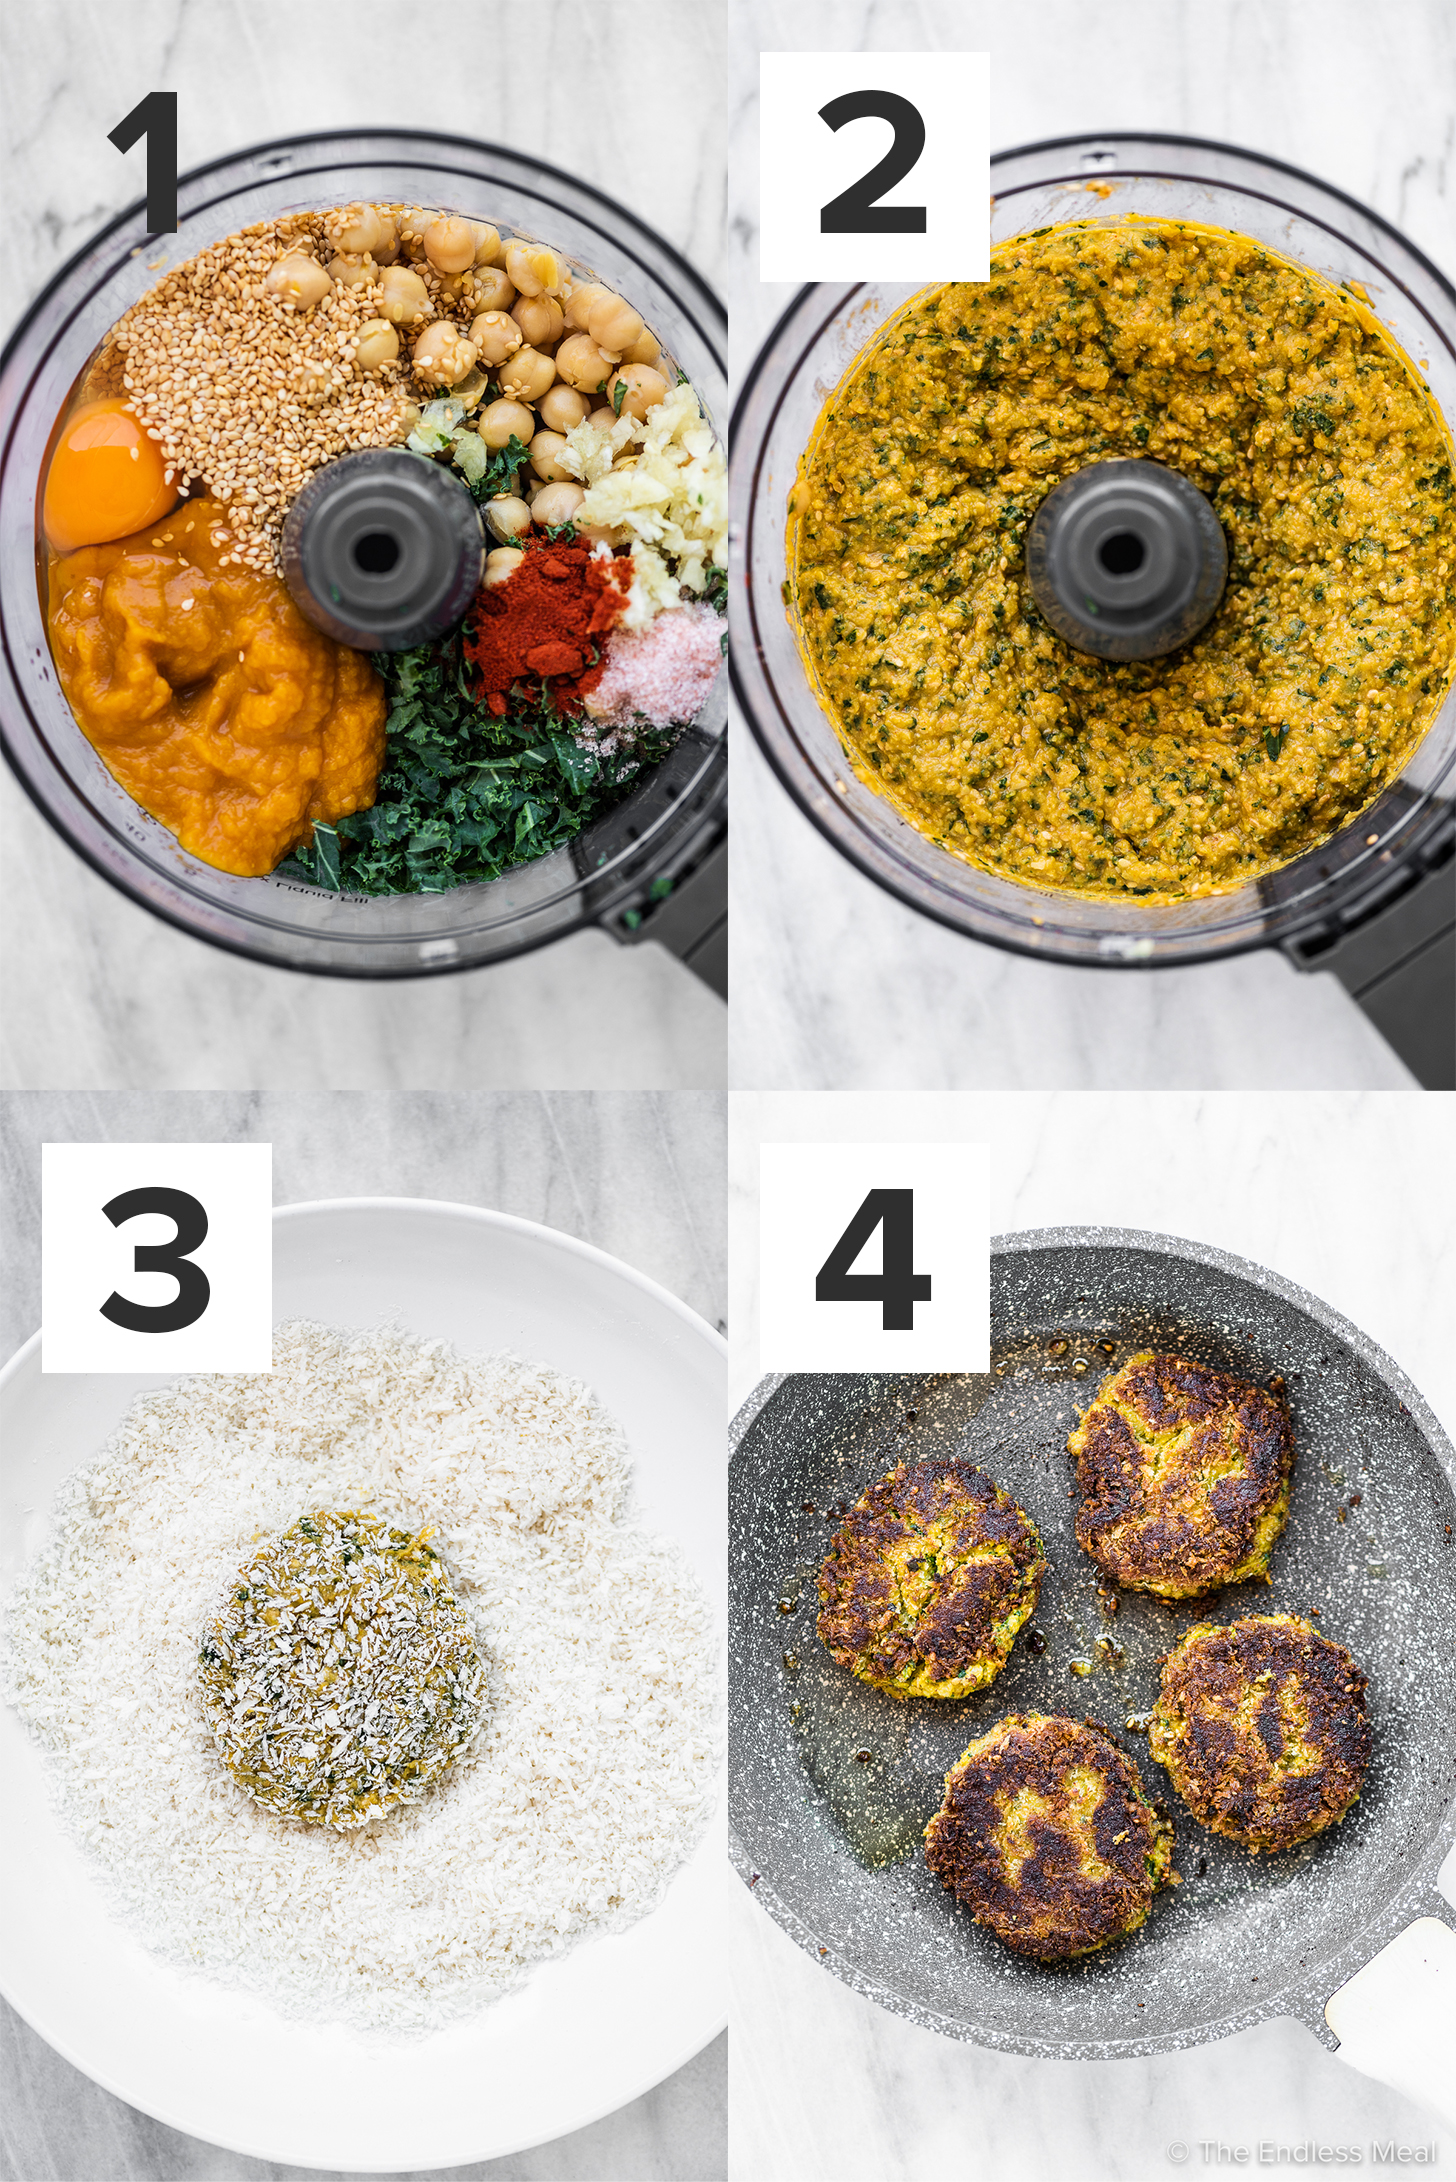 4 pictures showing how to make chickpea pumpkin patties.